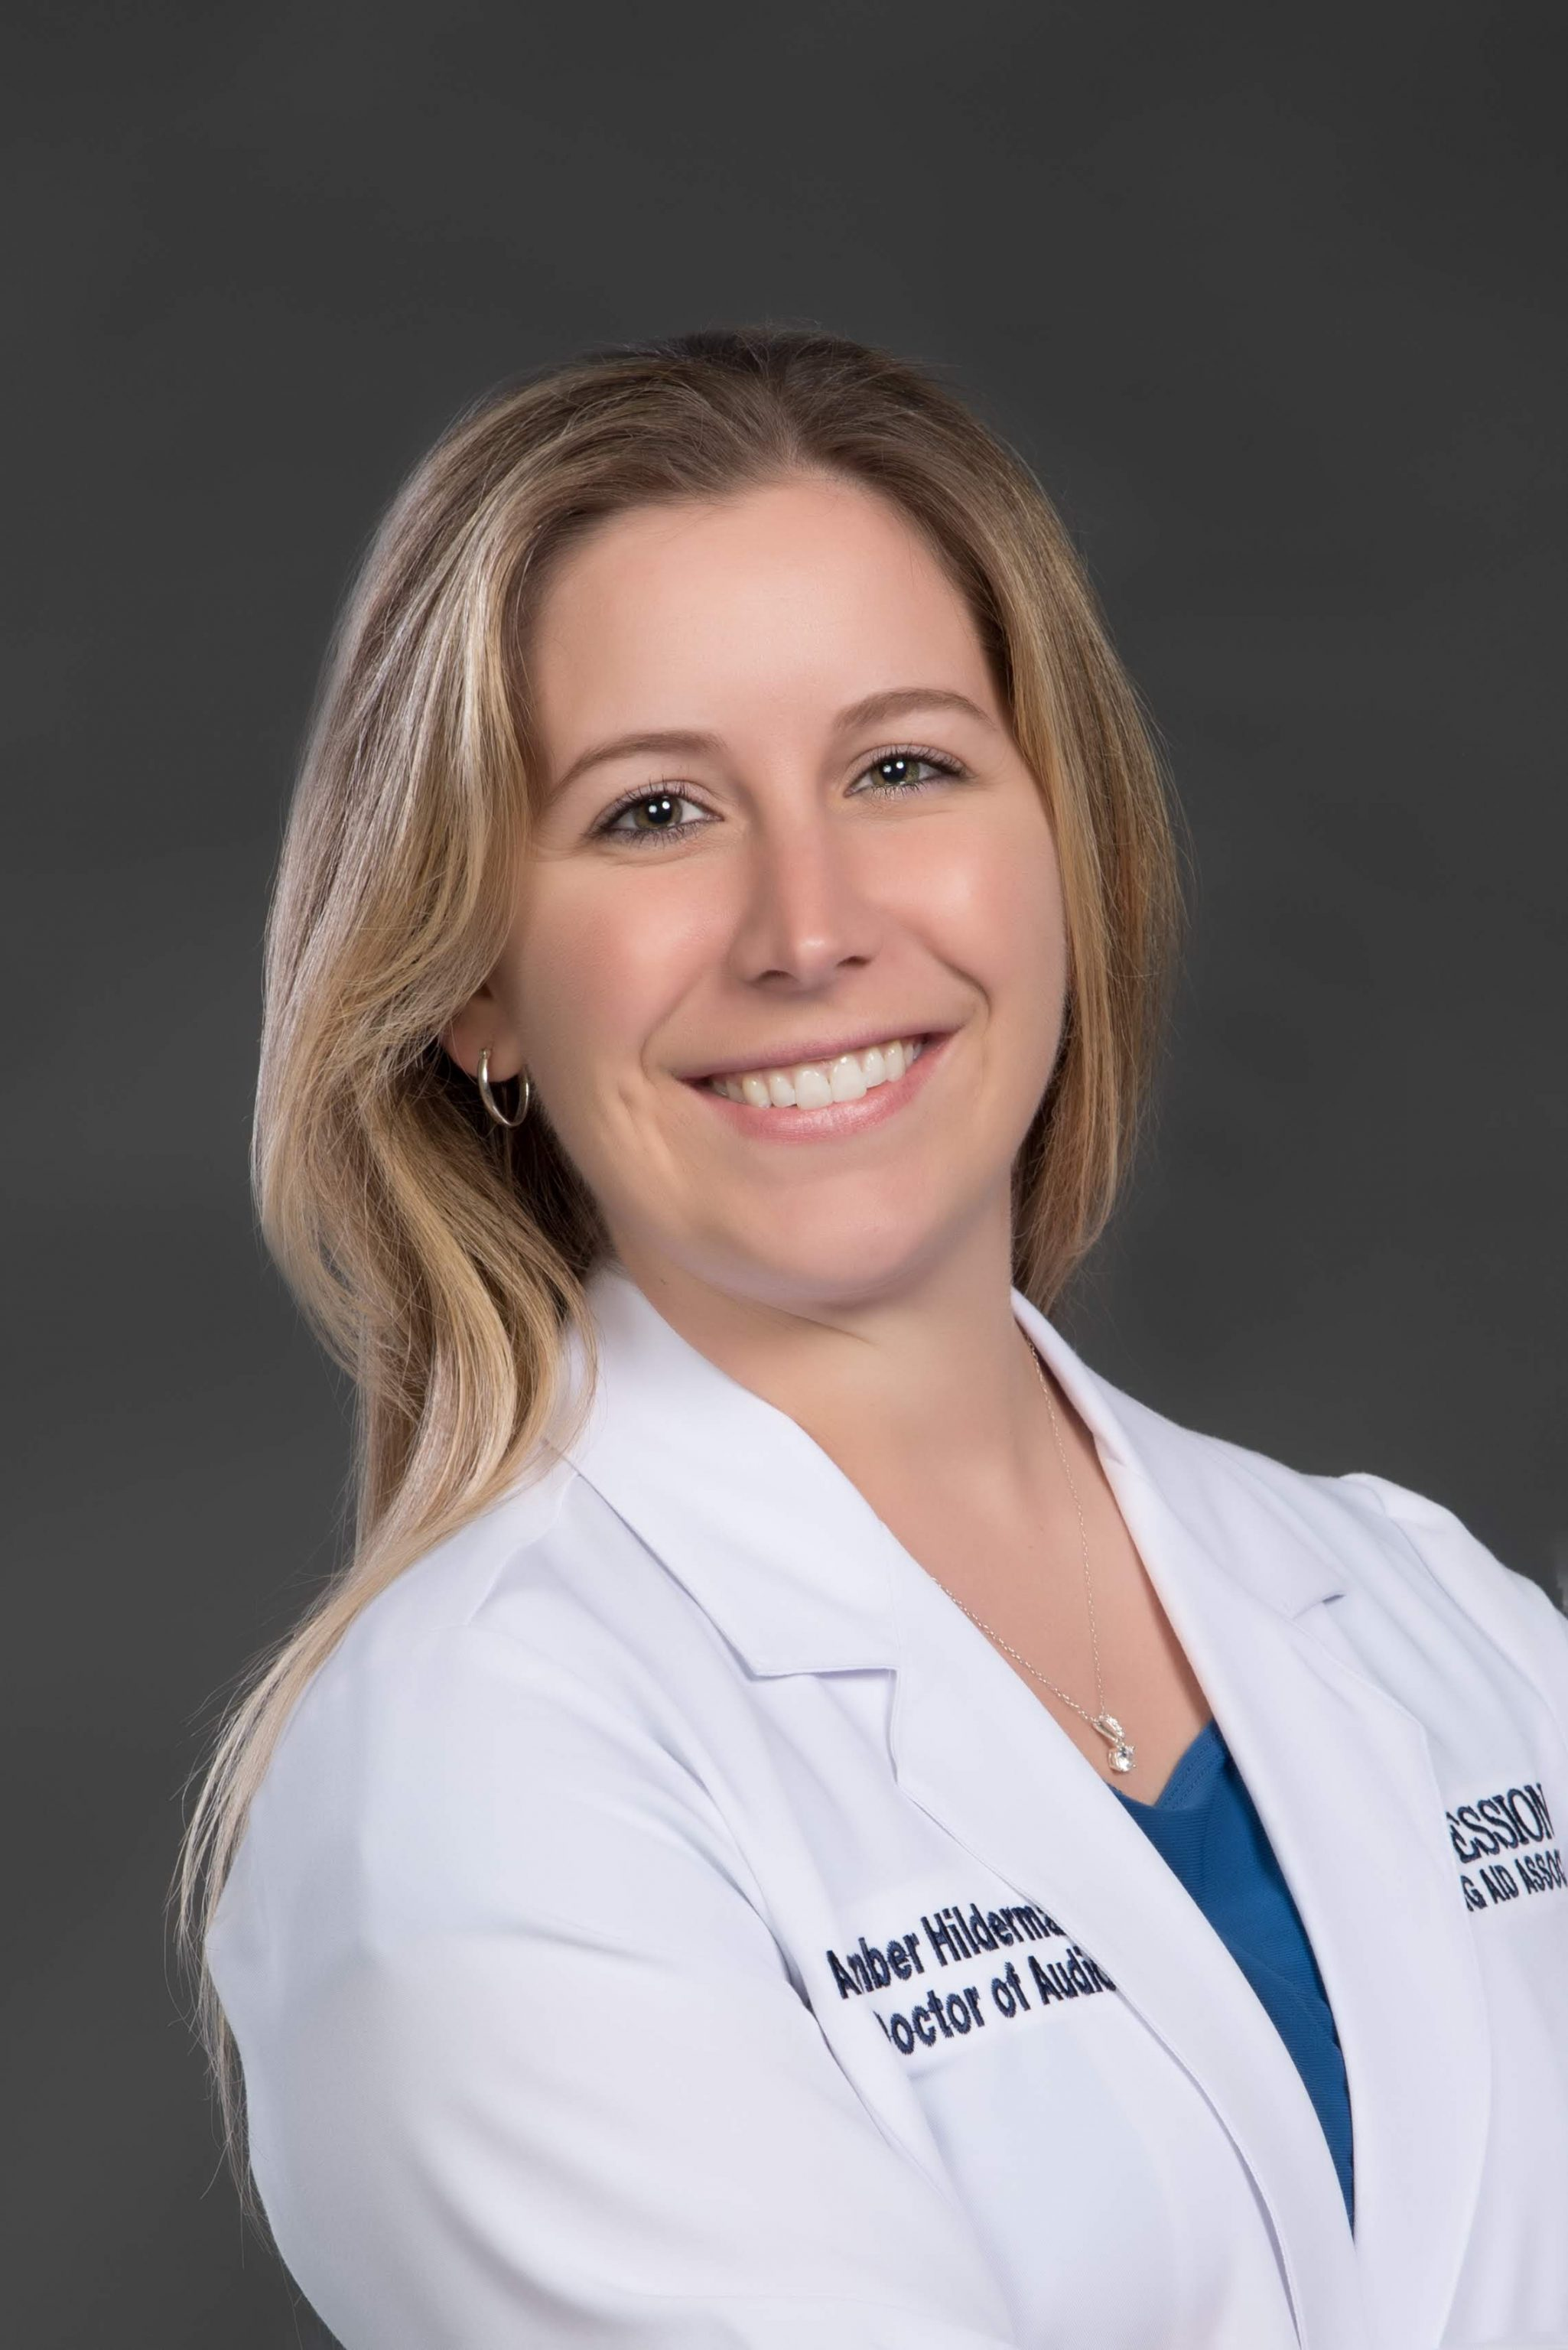 Amber (Hilderman) Pfeifer, Au.D. : Doctor of Audiology